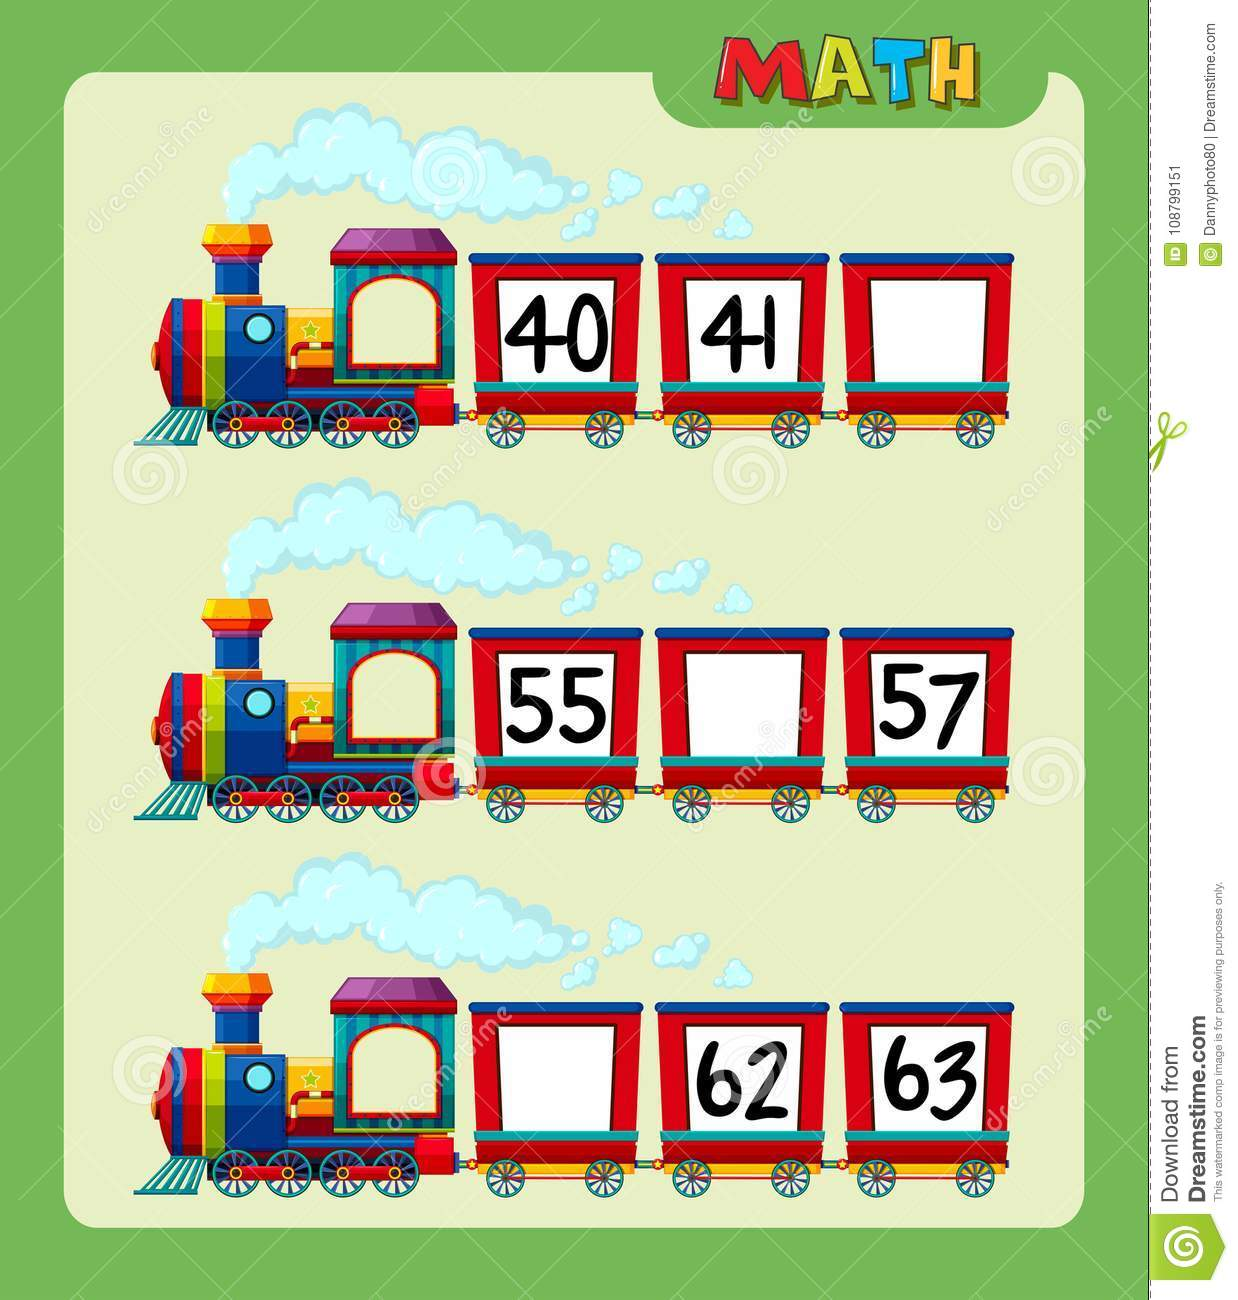 Math Worksheet With Counting Numbers On Train Stock Vector